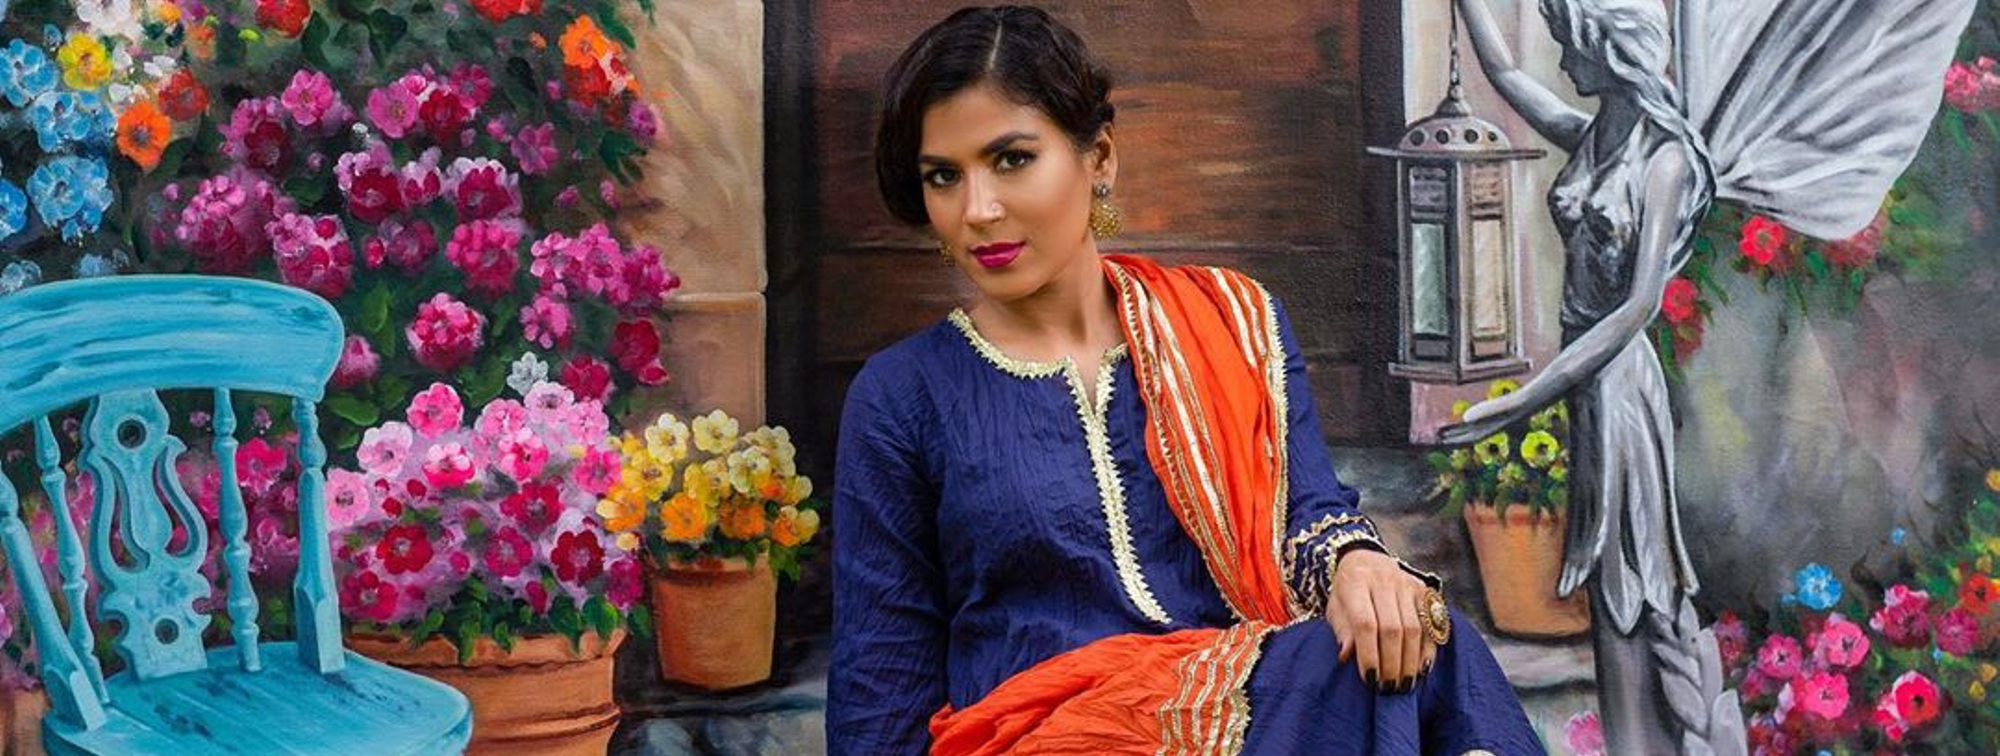 Is Pakistan Gearing Towards Slow And Sustainable Fashion No But It Needs To Style Images